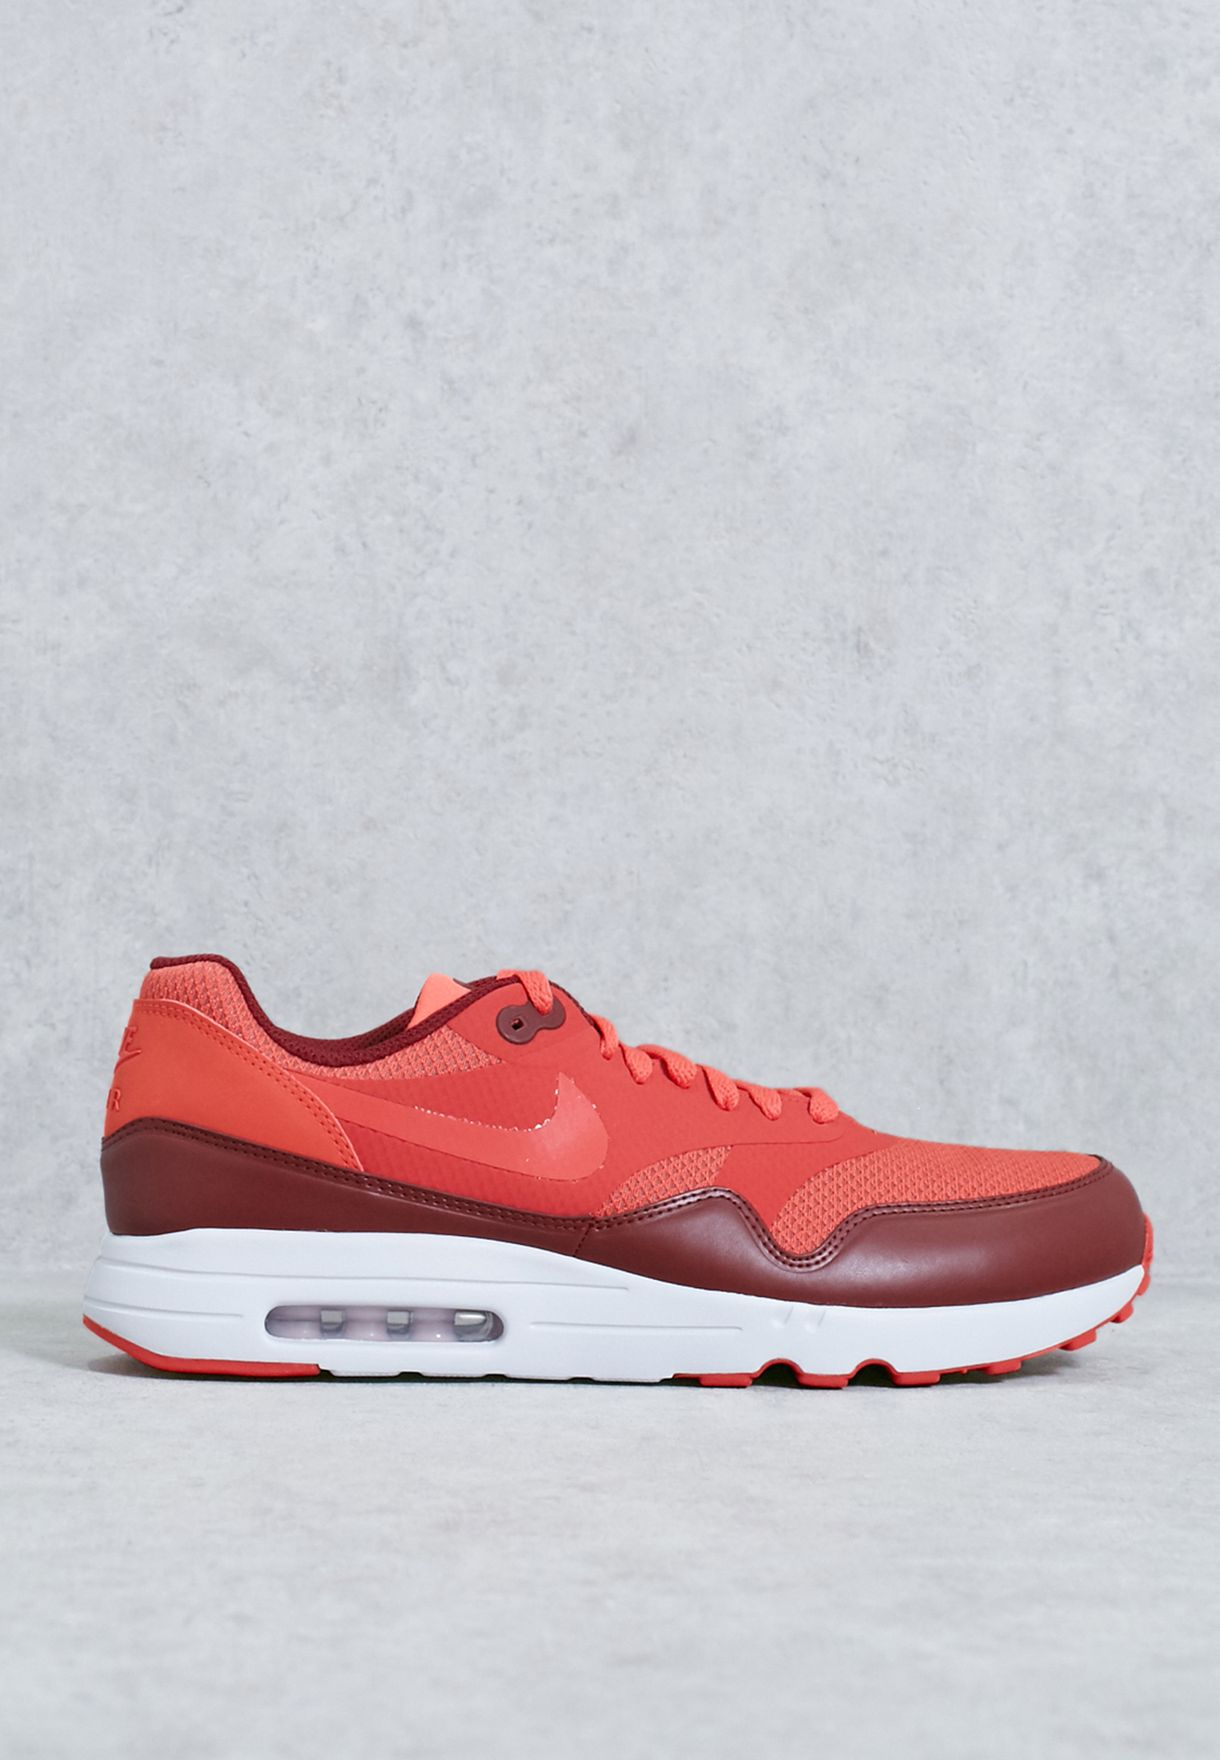 Shop Nike red Air Max 1 Ultra 2.0 Essential 875679-601 for Men in ... 16339847a